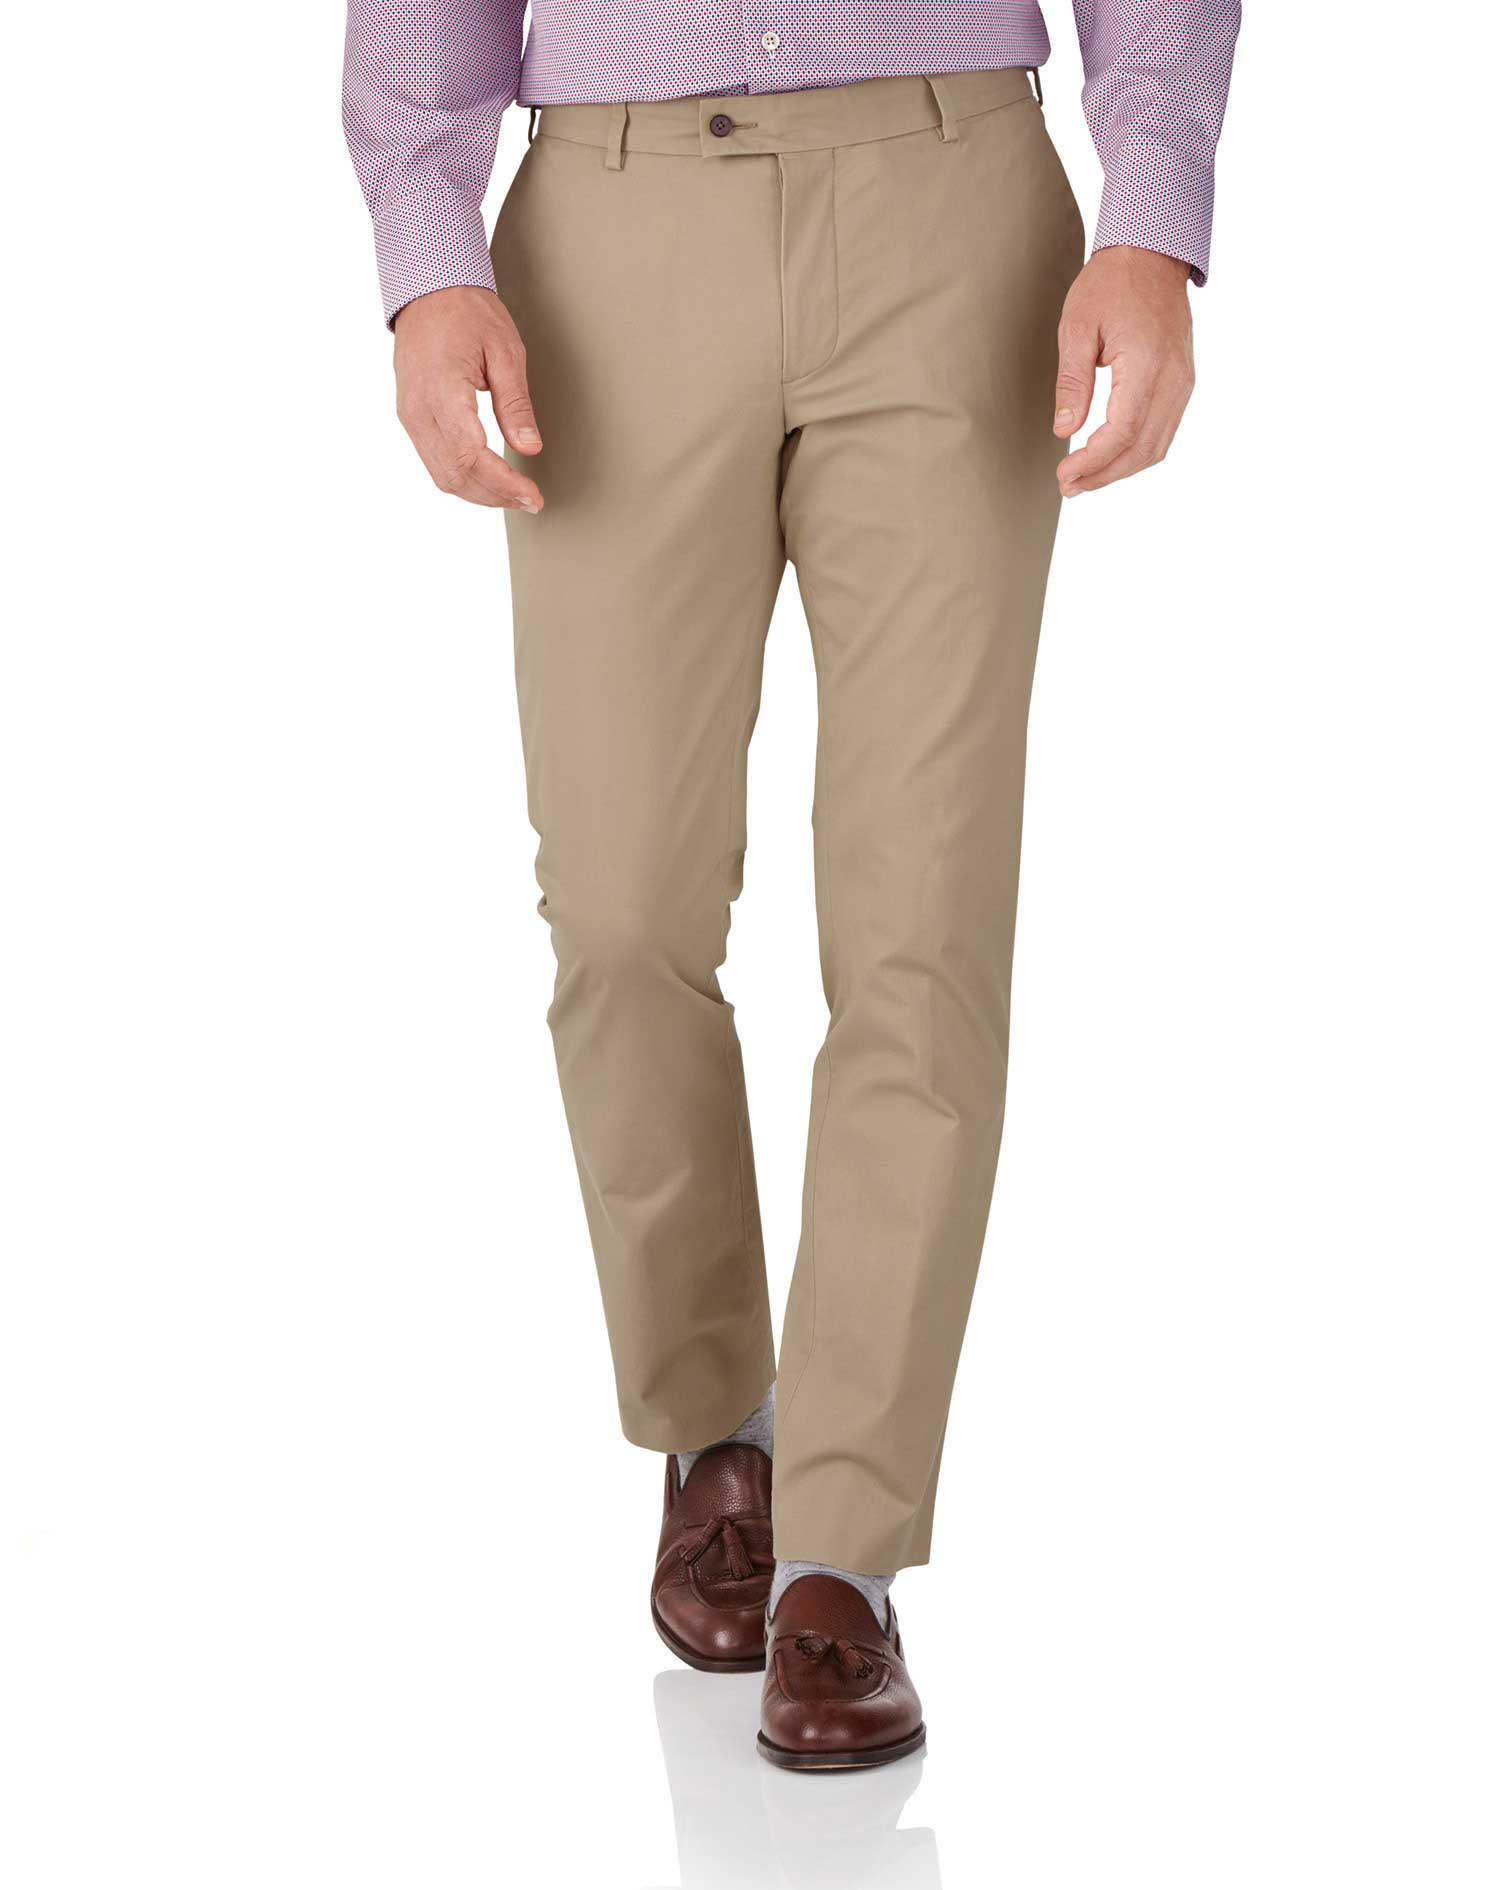 Tan Slim Fit Stretch Cotton Chino Trousers Size W34 L32 by Charles Tyrwhitt